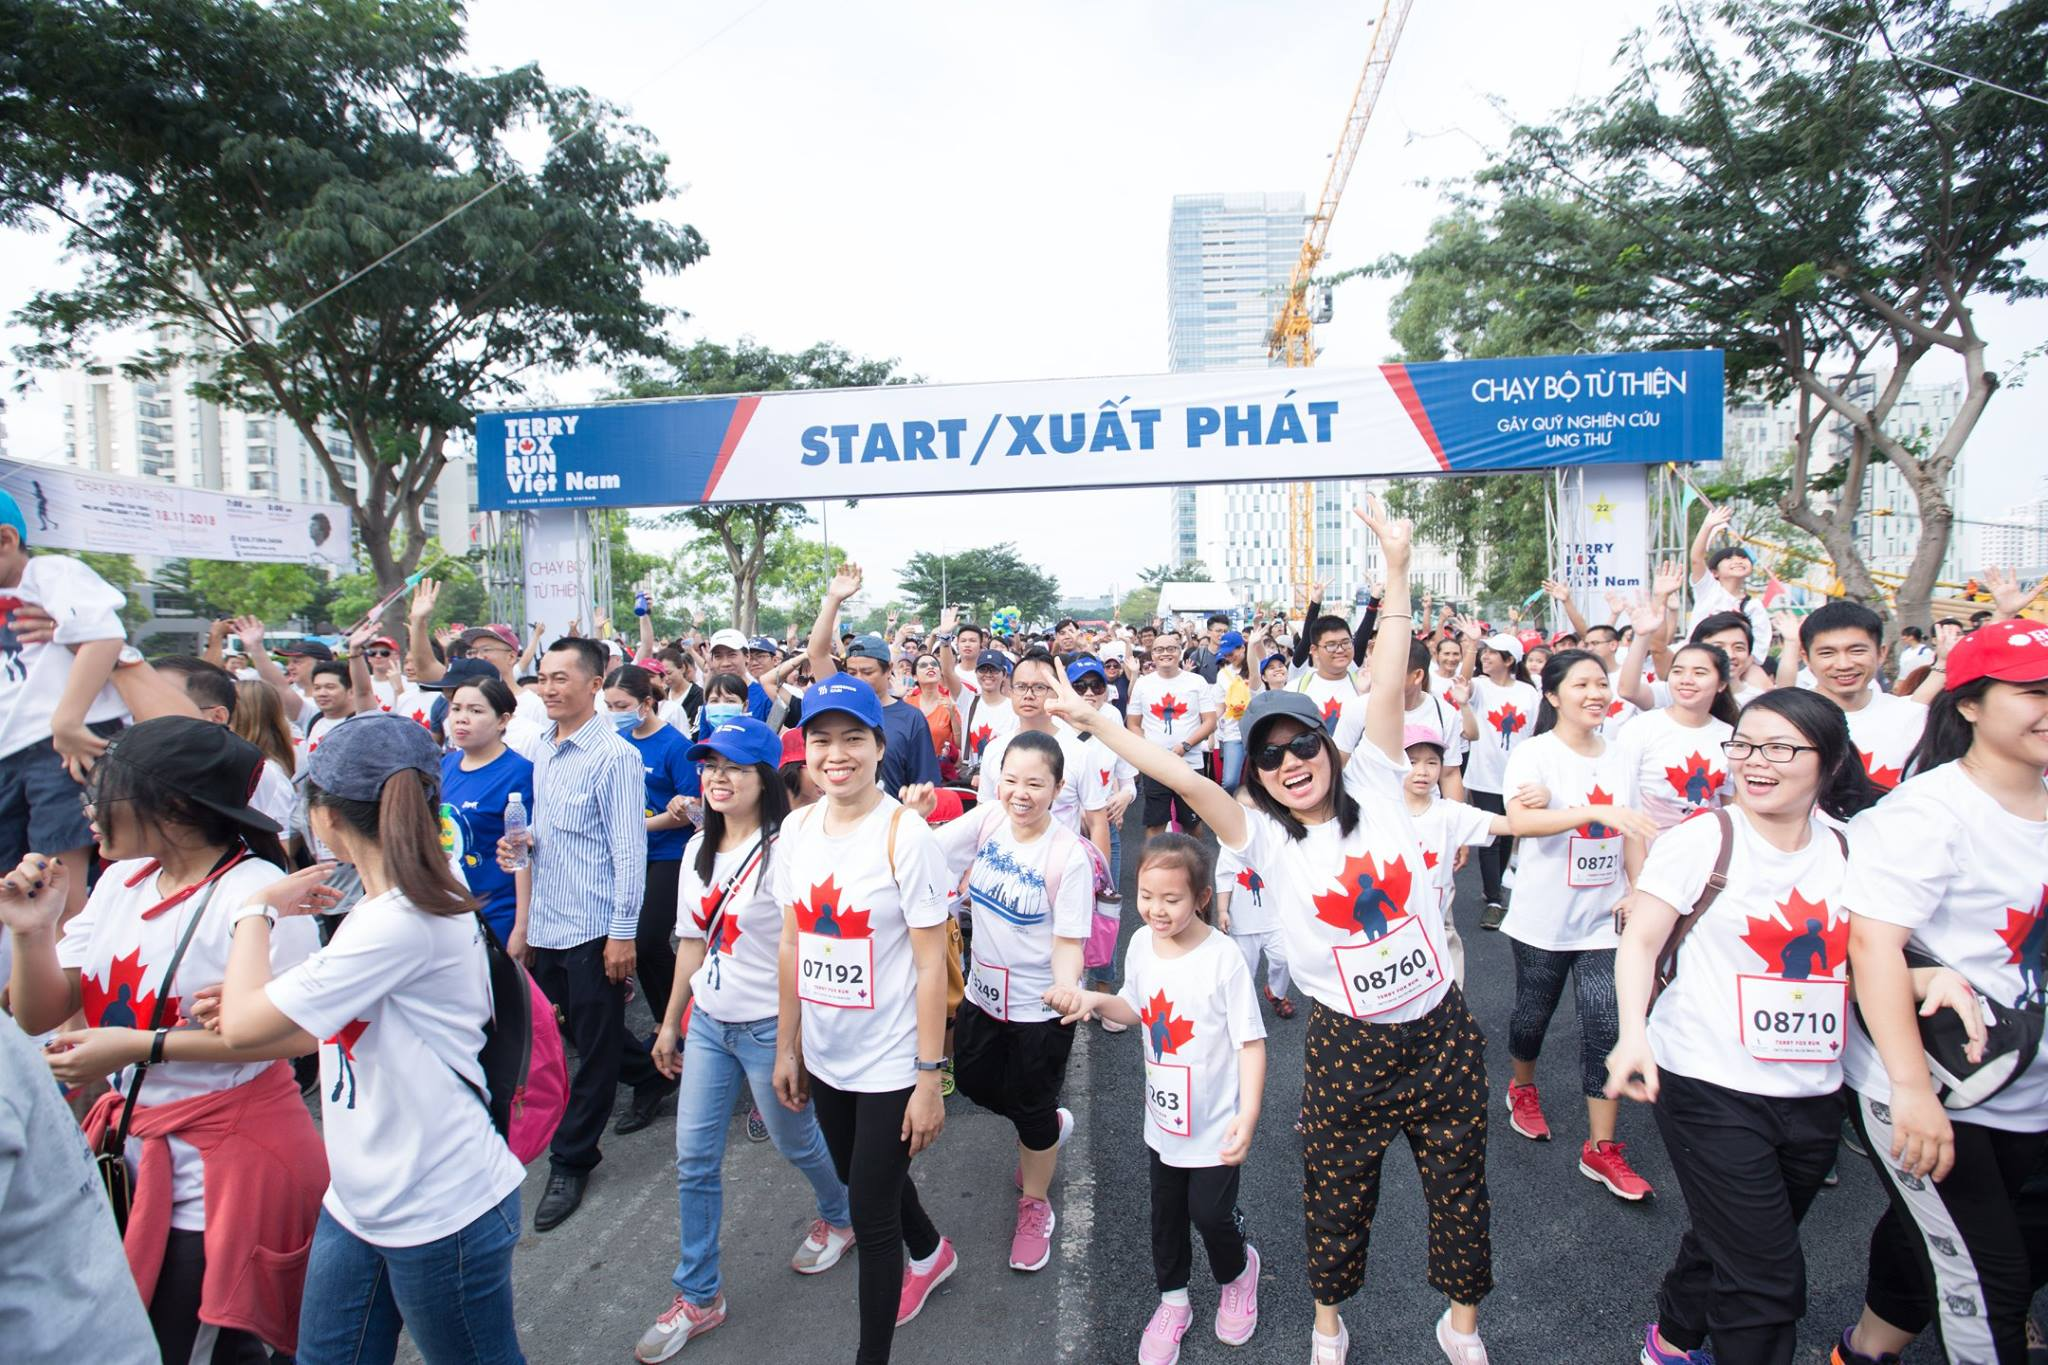 Charity run for cancer research to return to Ho Chi Minh City in November